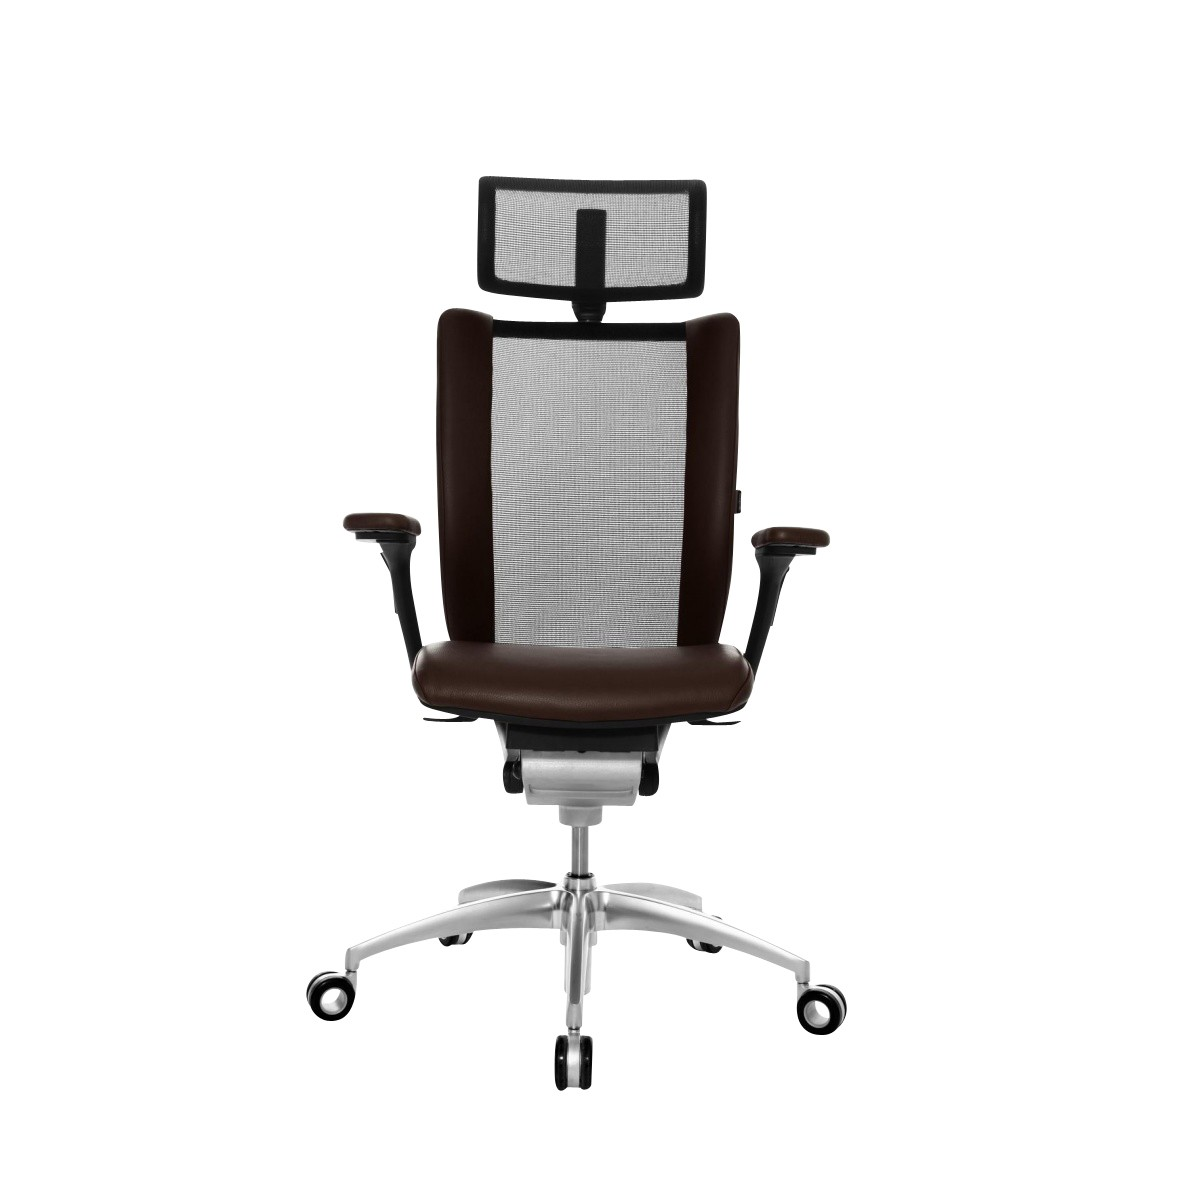 Wagner An Limited Office Chair For